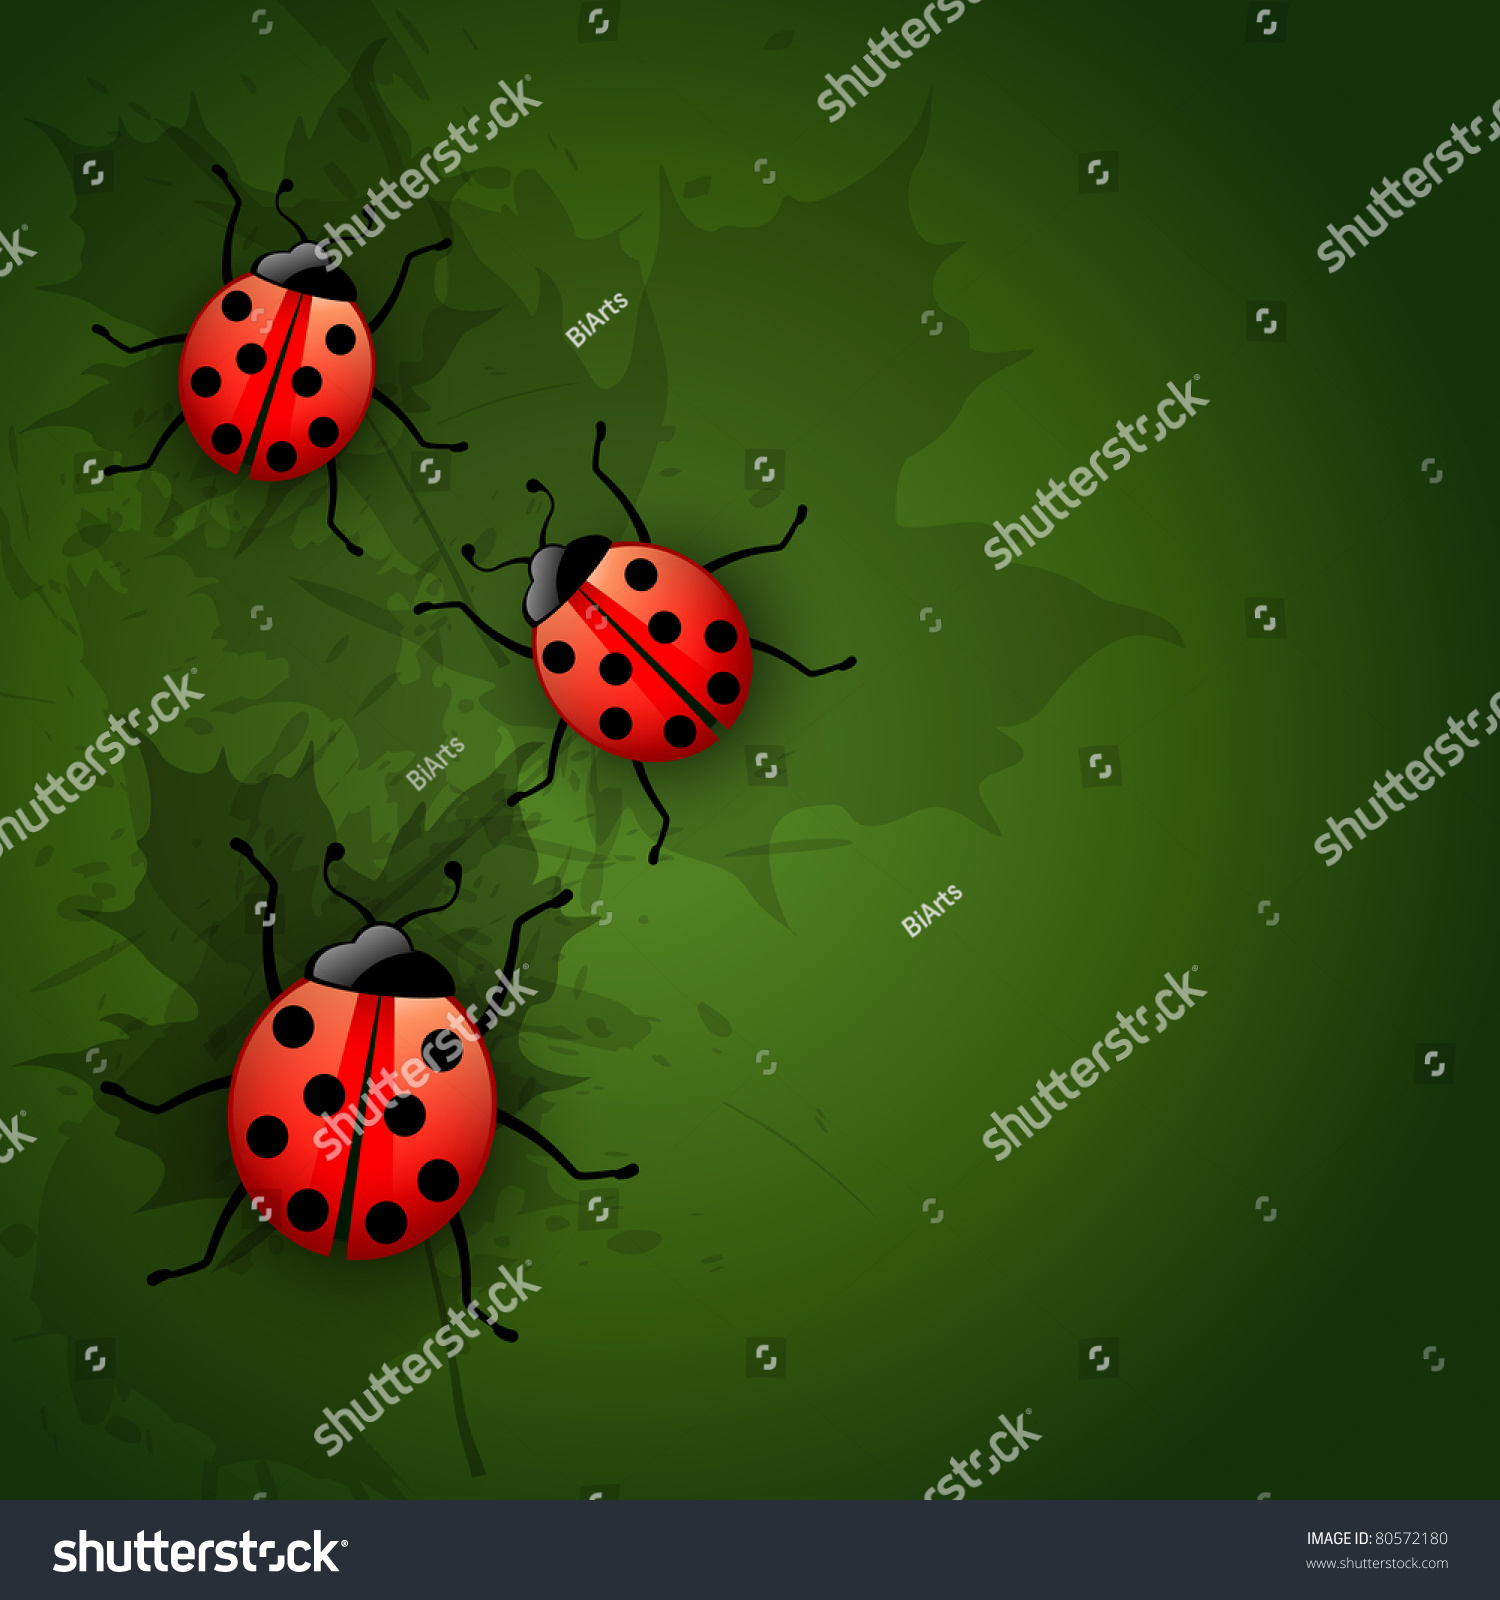 Vector Ladybug Design Art Illustration - 80572180 : Shutterstock